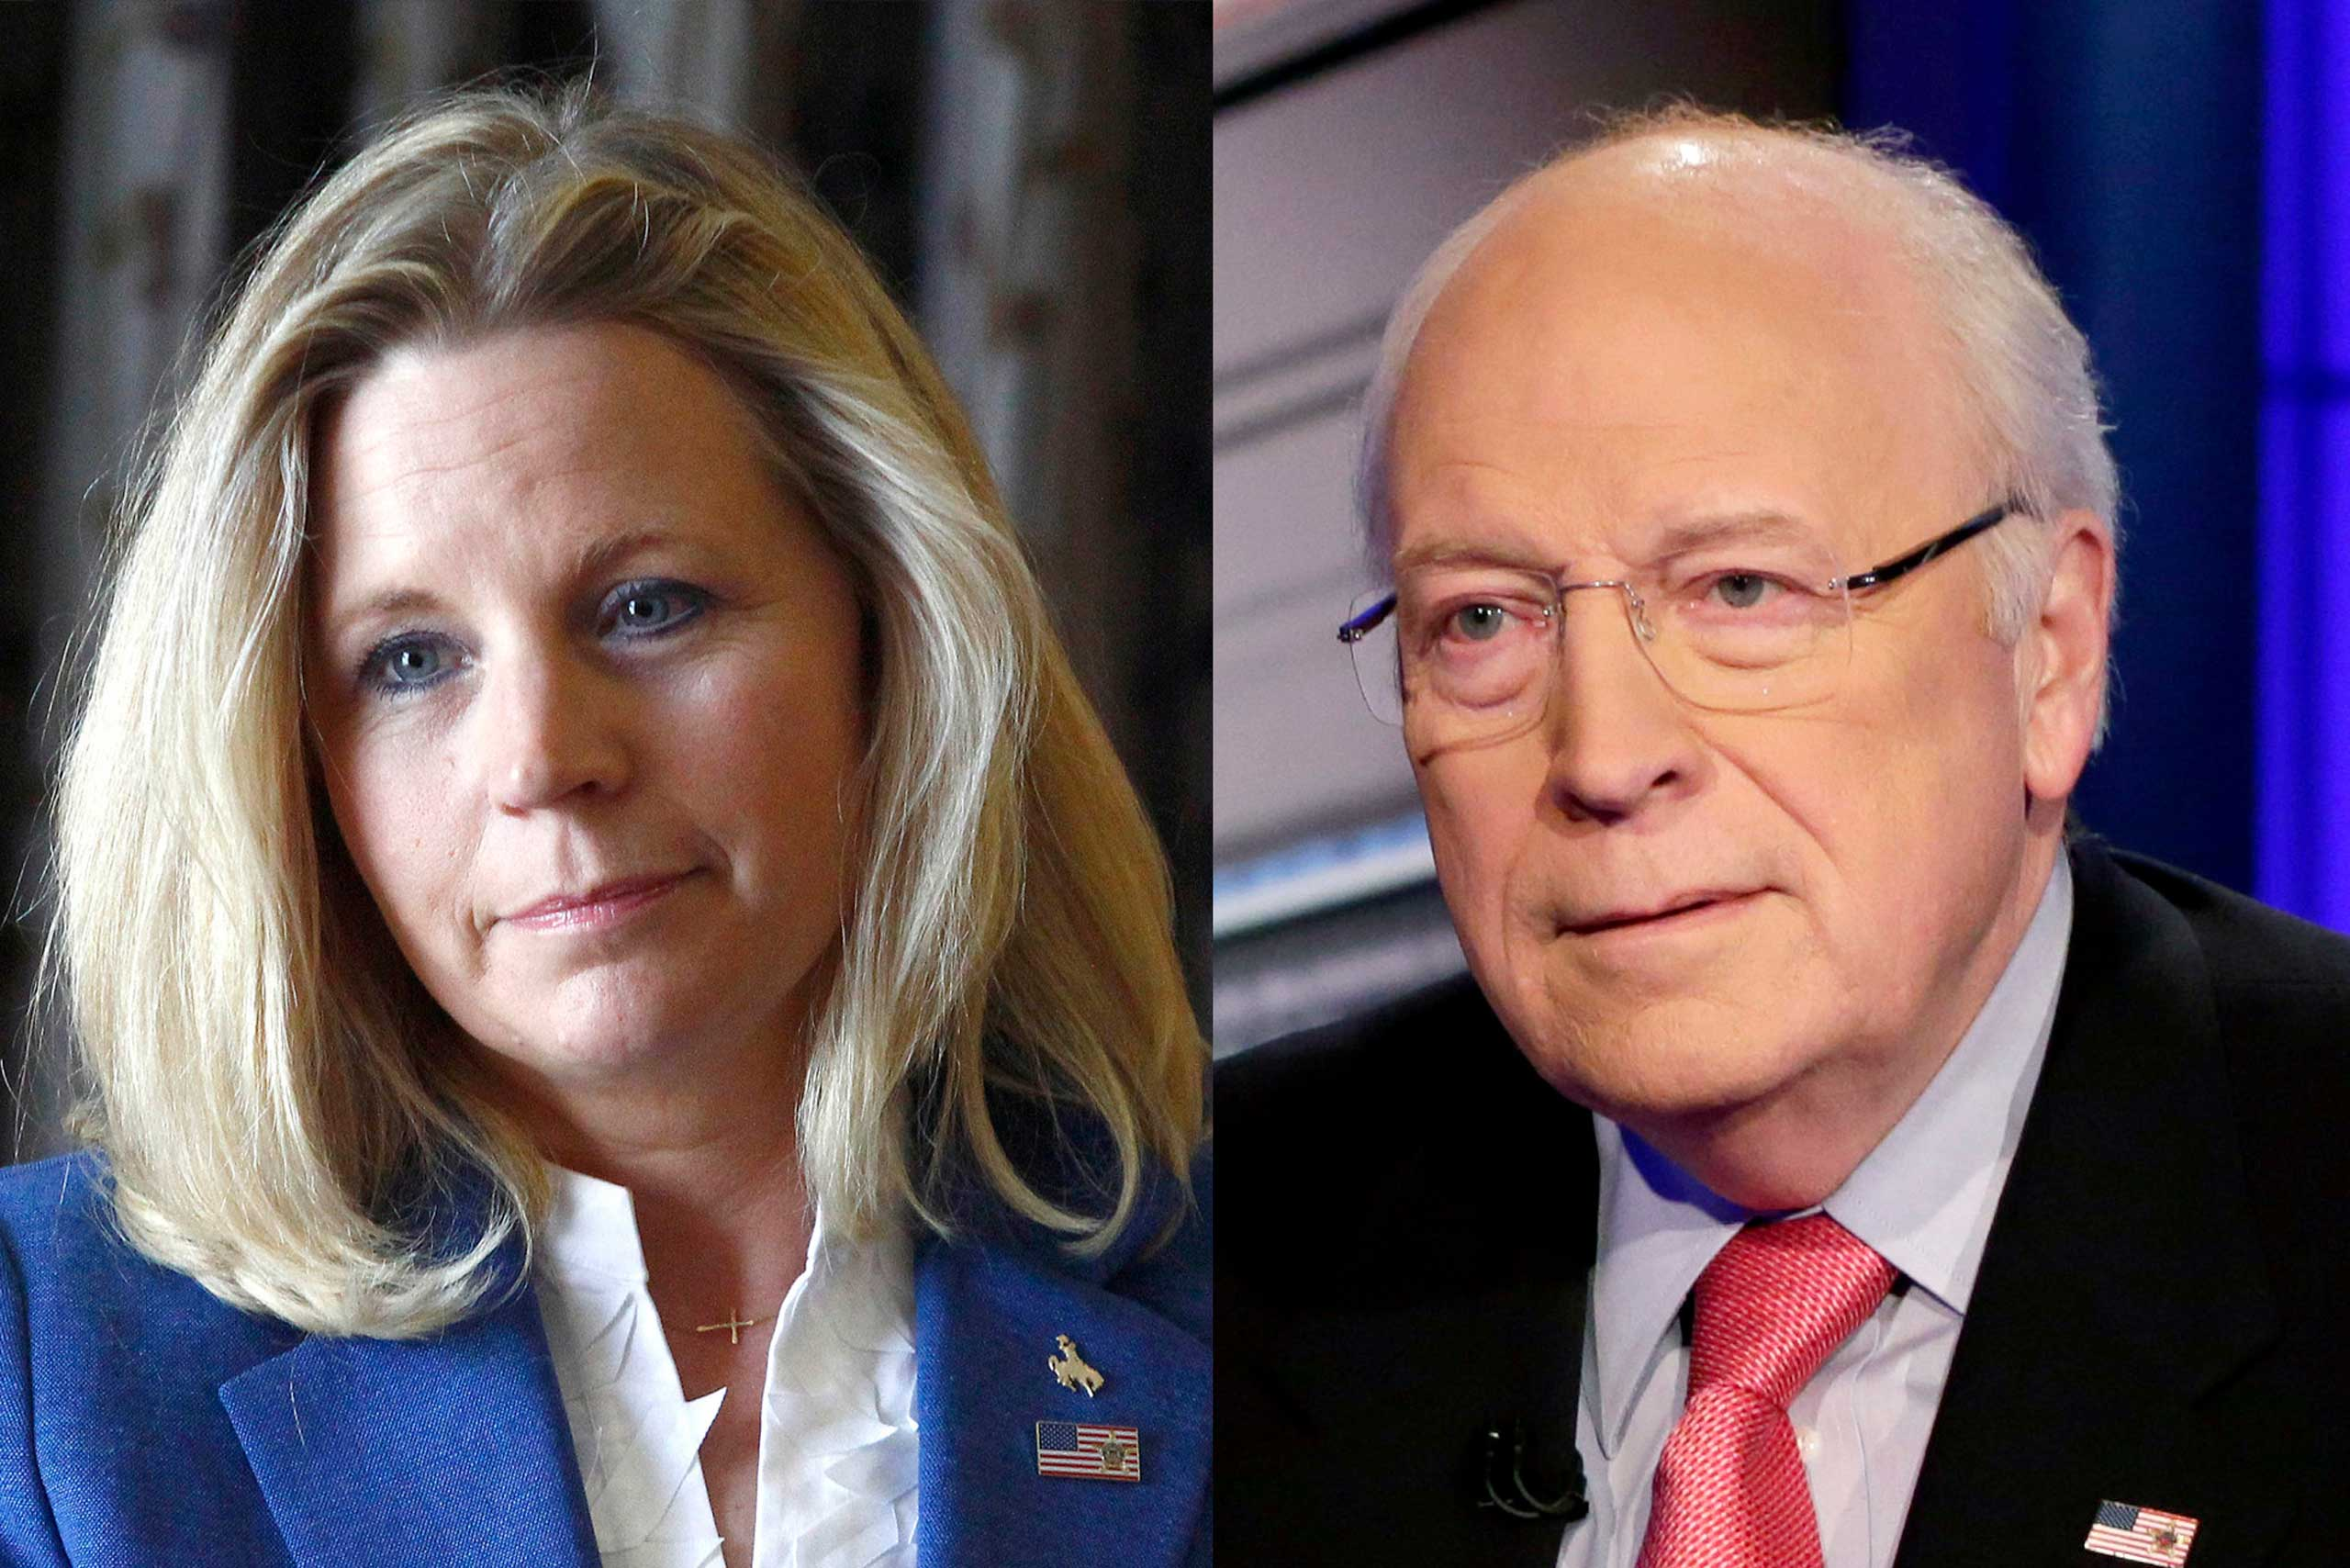 Dick Cheney (right) has served as a congressman, White House aide, Secretary of Defense and unusually powerful Vice President, but he's not the only political force in the family. His daughter Liz Cheney (left) is a conservative commentator and activist who ran unsuccessfully for Senate in 2014.